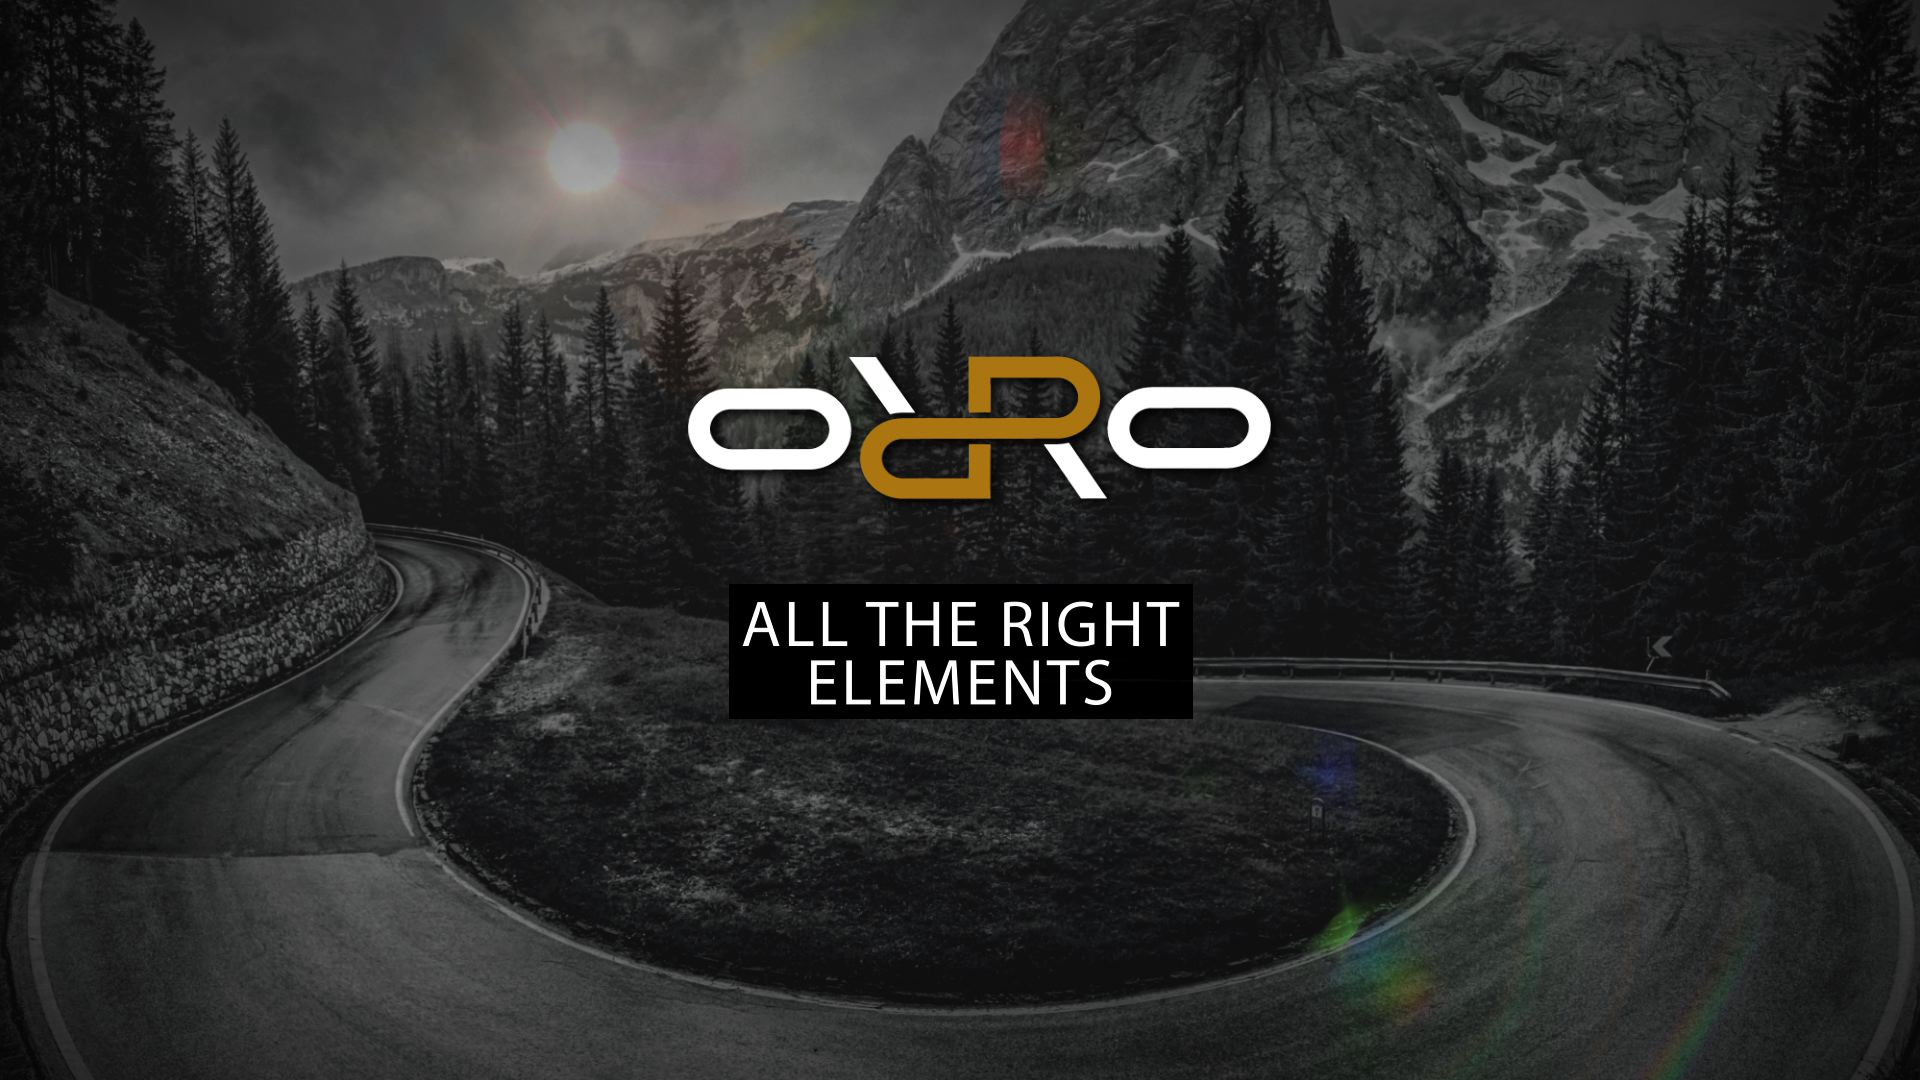 ORRO Bikes TV advert